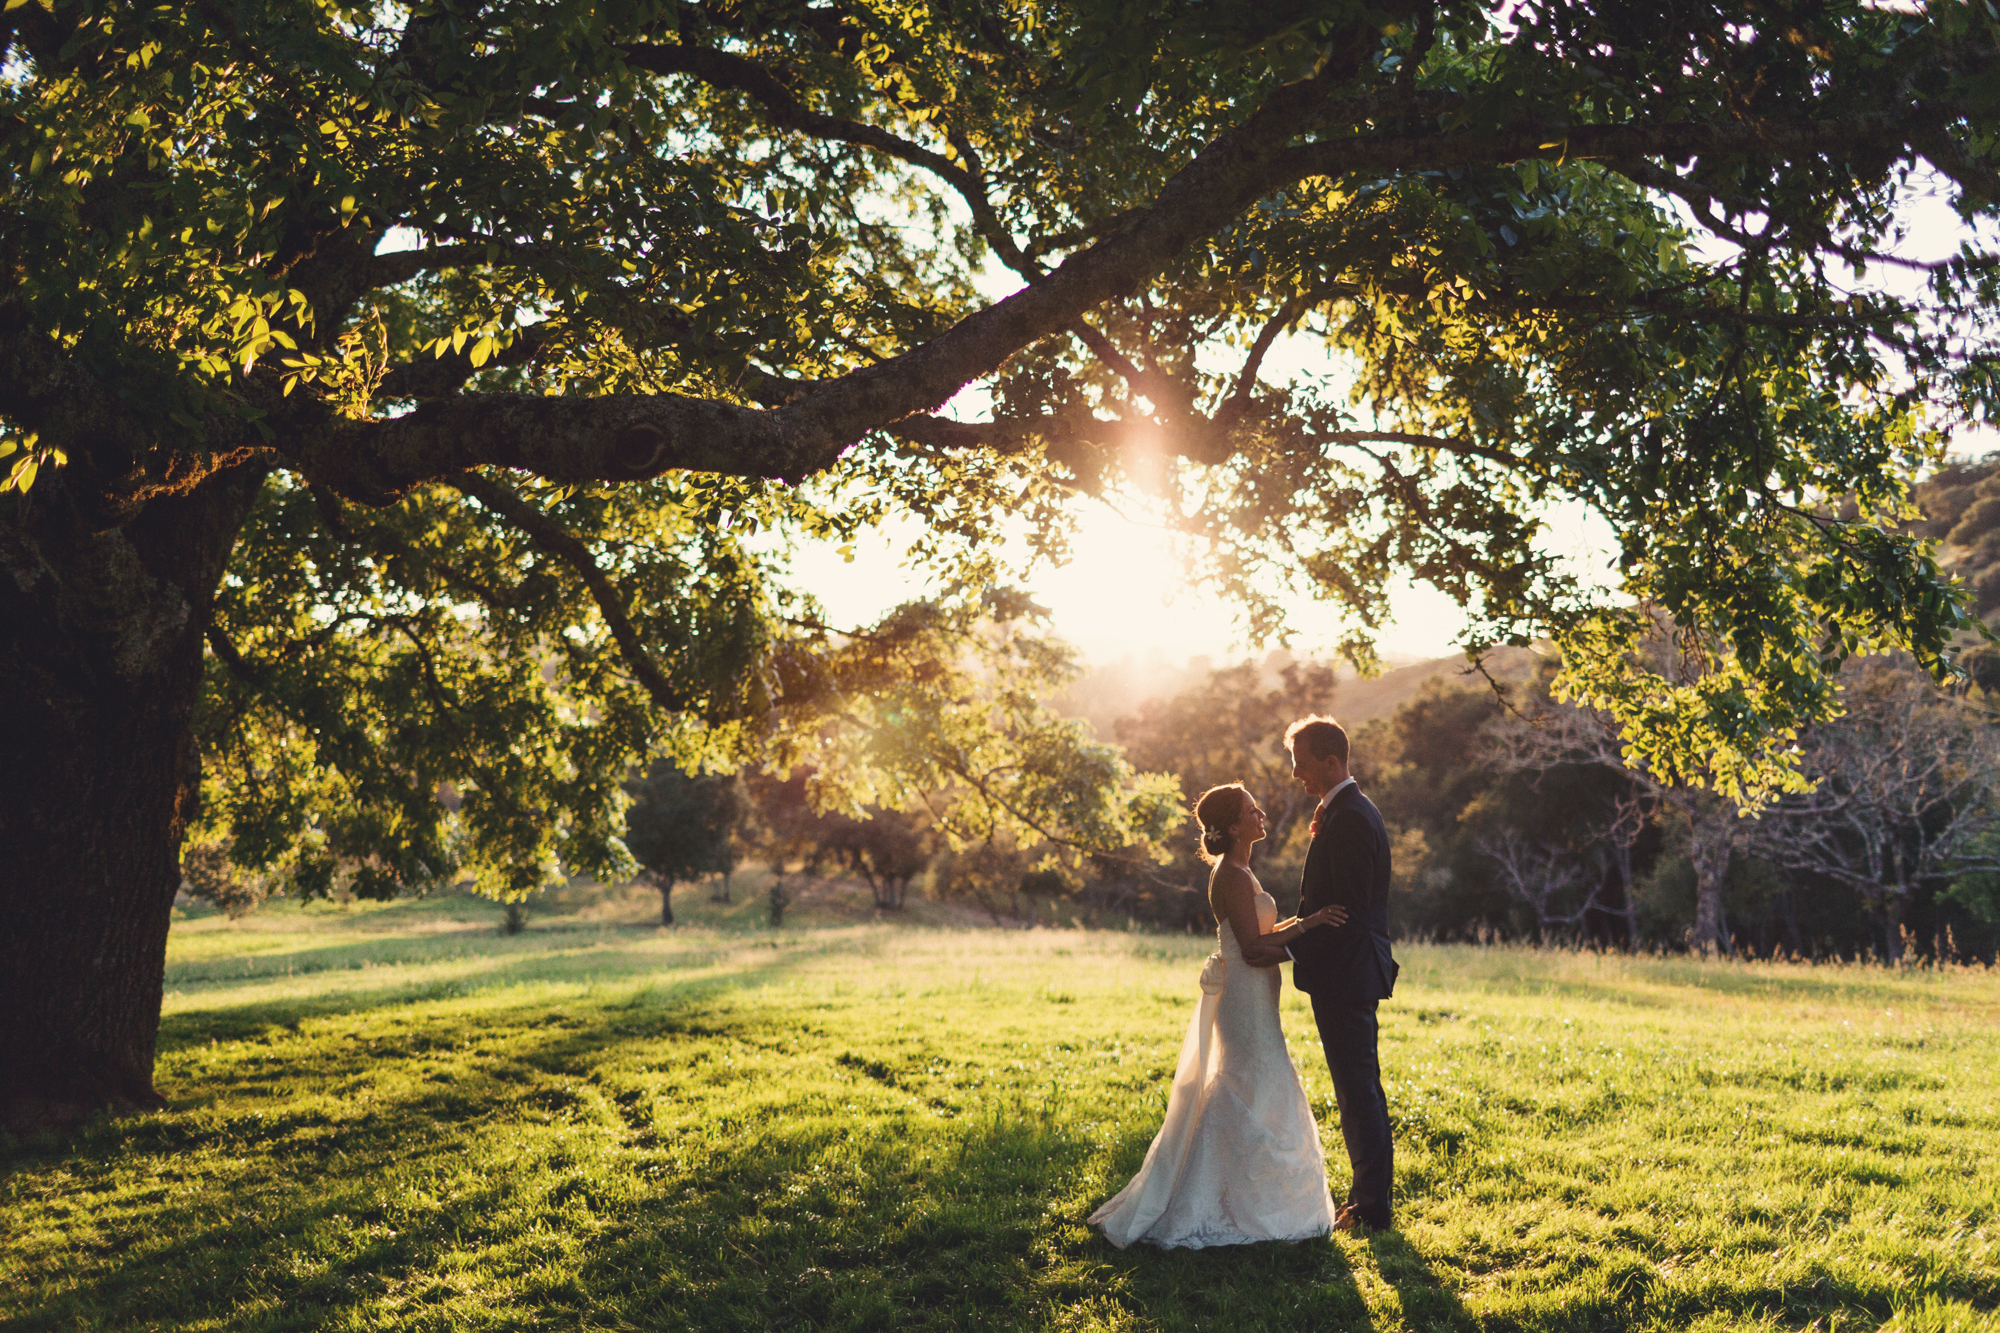 Triple S Ranch Wedding in Napa Valley @Anne-Claire Brun 0115